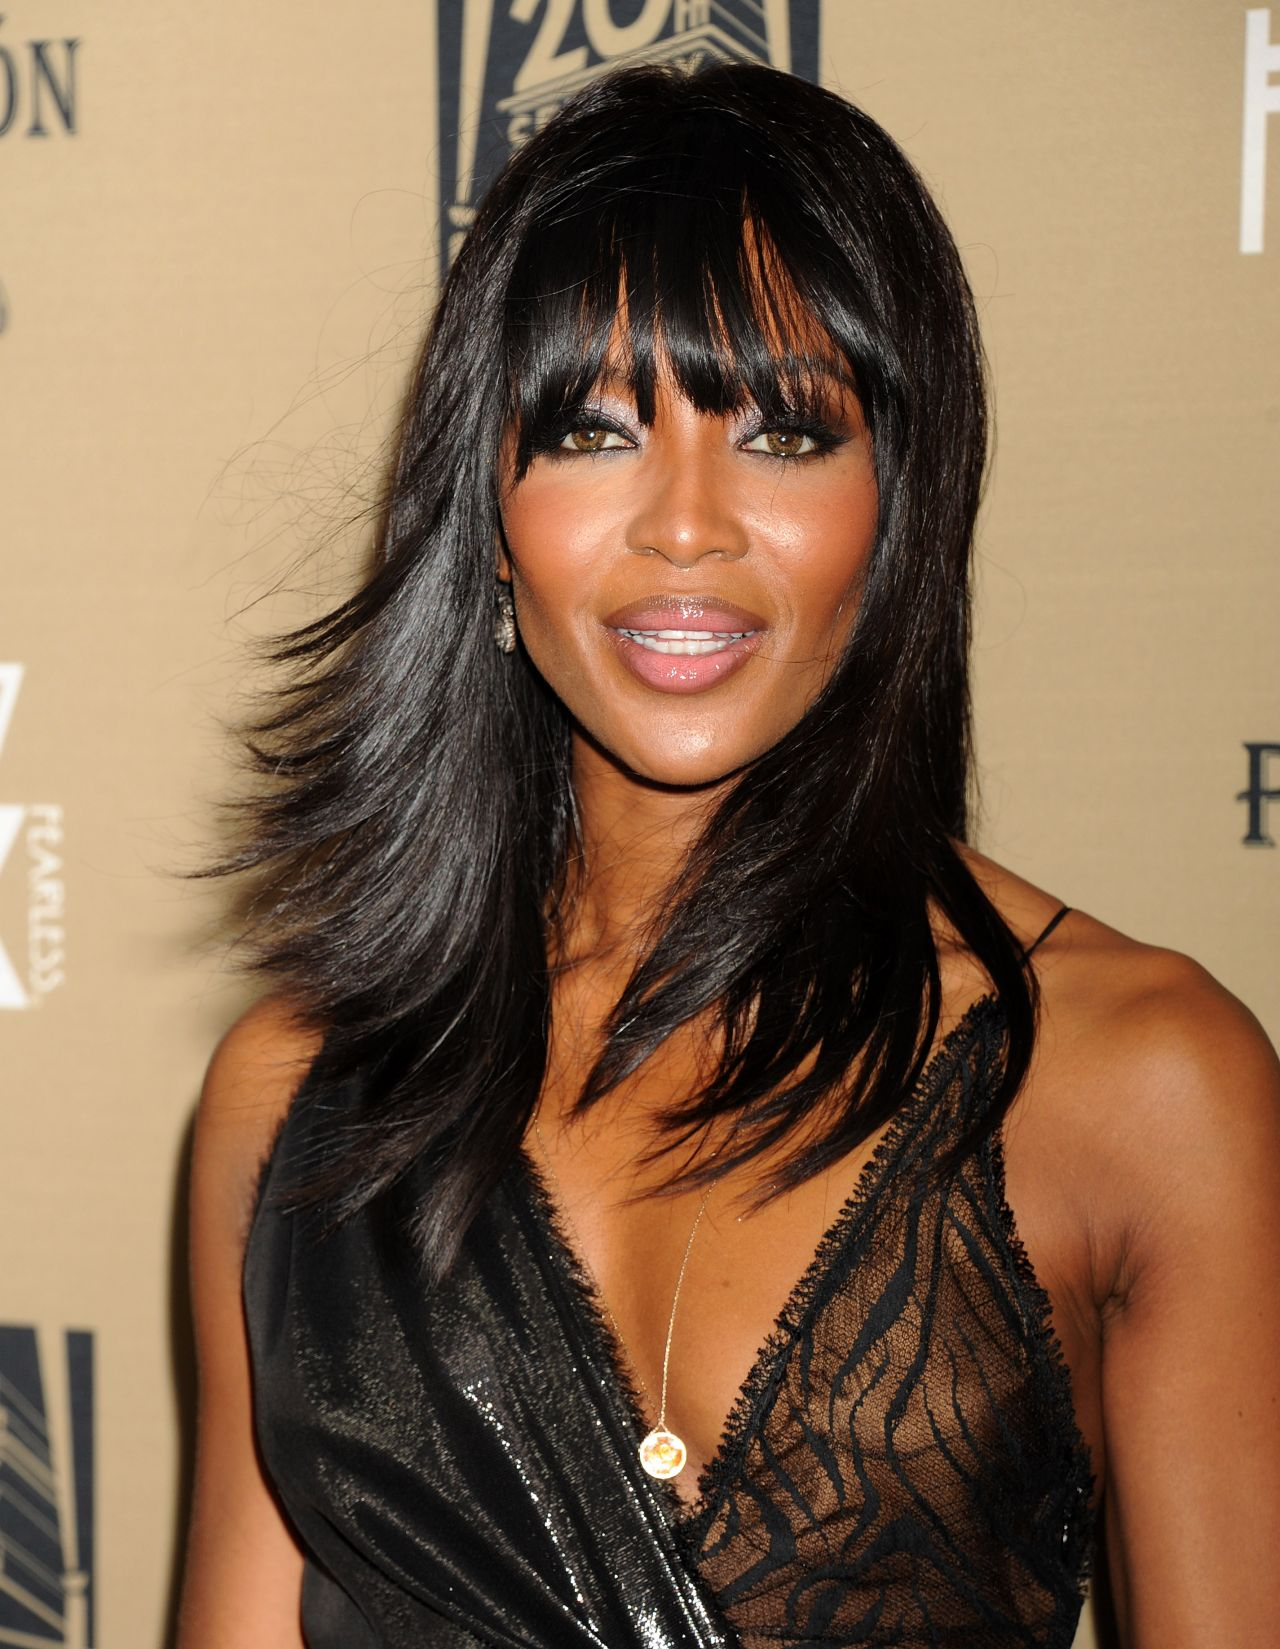 naomi-campbell-fx-s-american-horror-story-hotel-screening-in-los-angeles_12